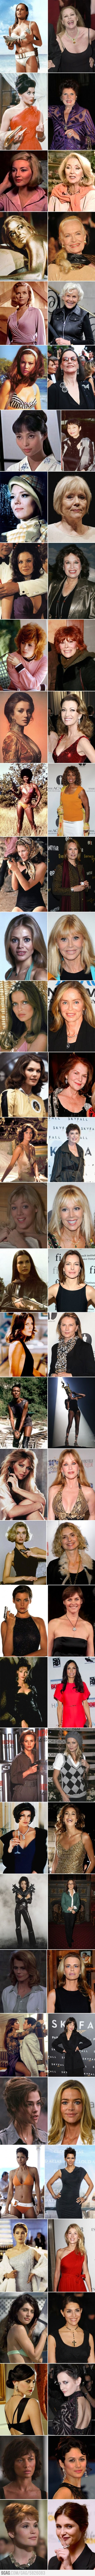 Bond Girls - Then & Now